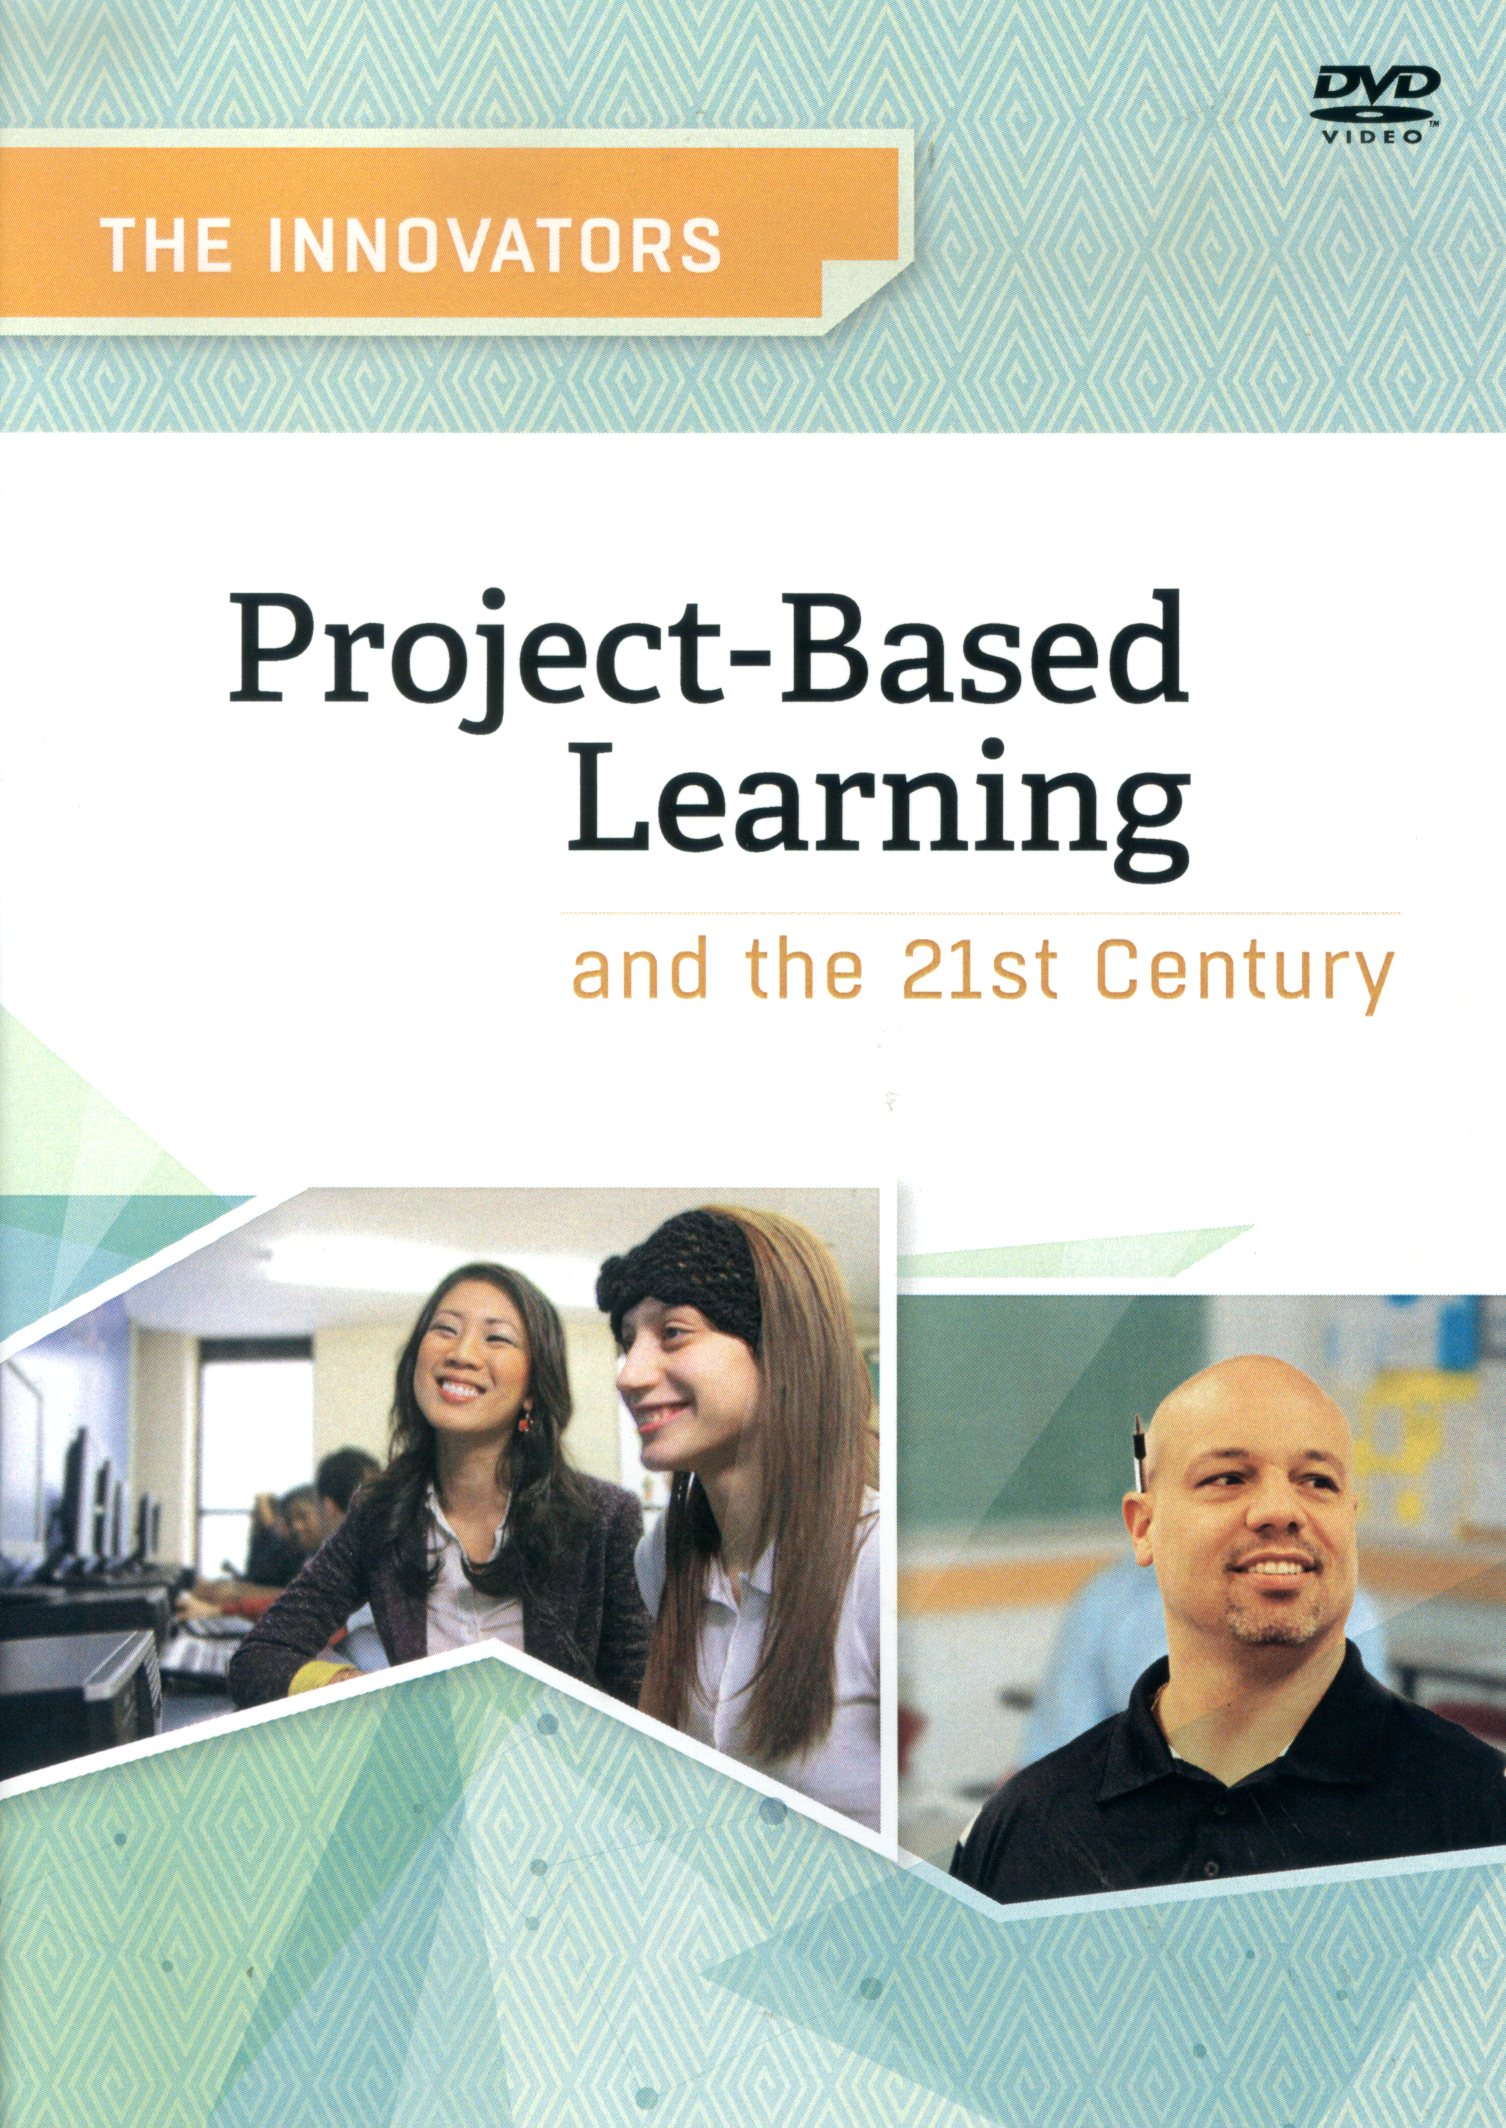 Project-based learning and the 21st century